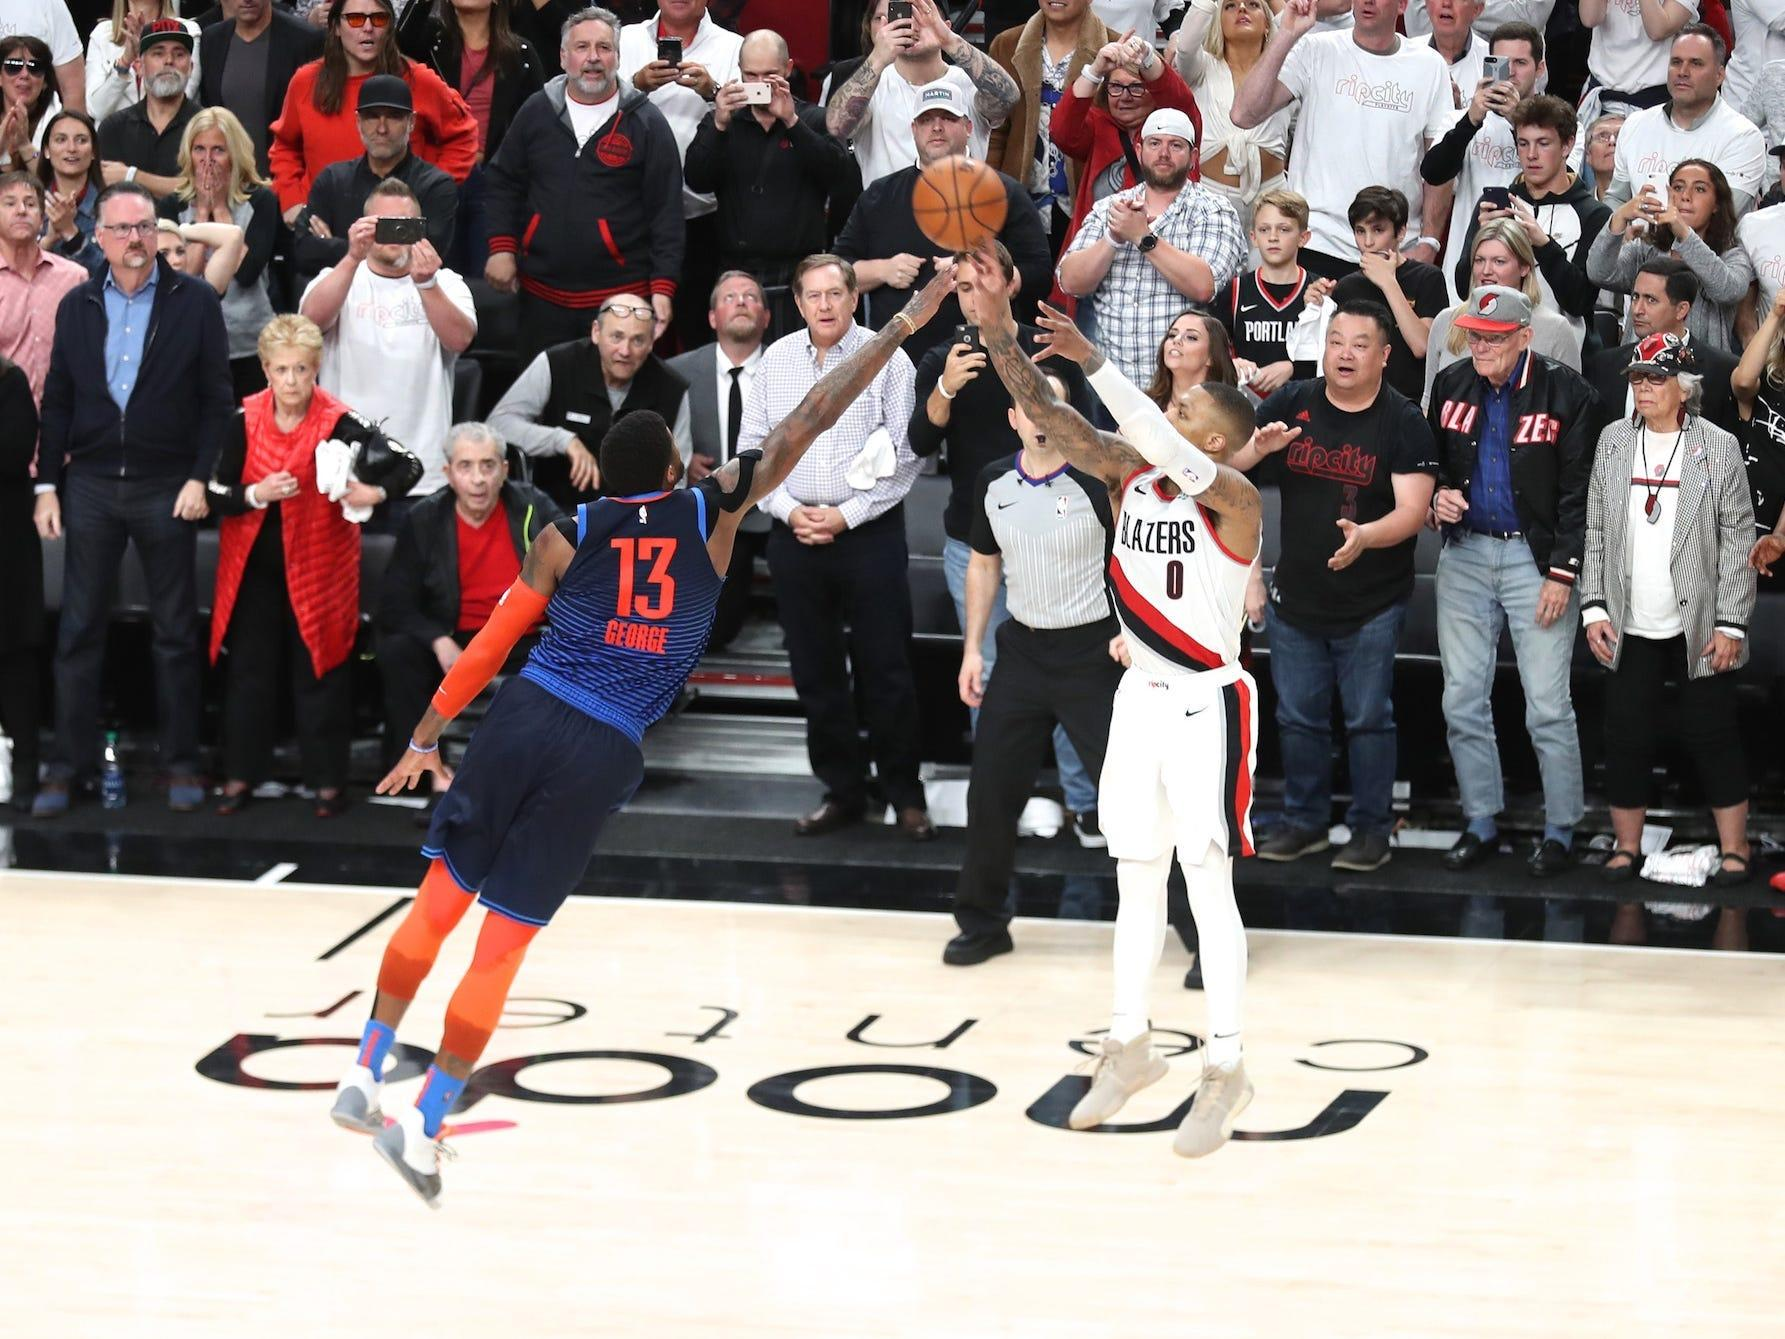 www.businessinsider.in: Paul George admits he was wrong about Damian Lillard's iconic playoff shot after remarkable NBA All-Star performance